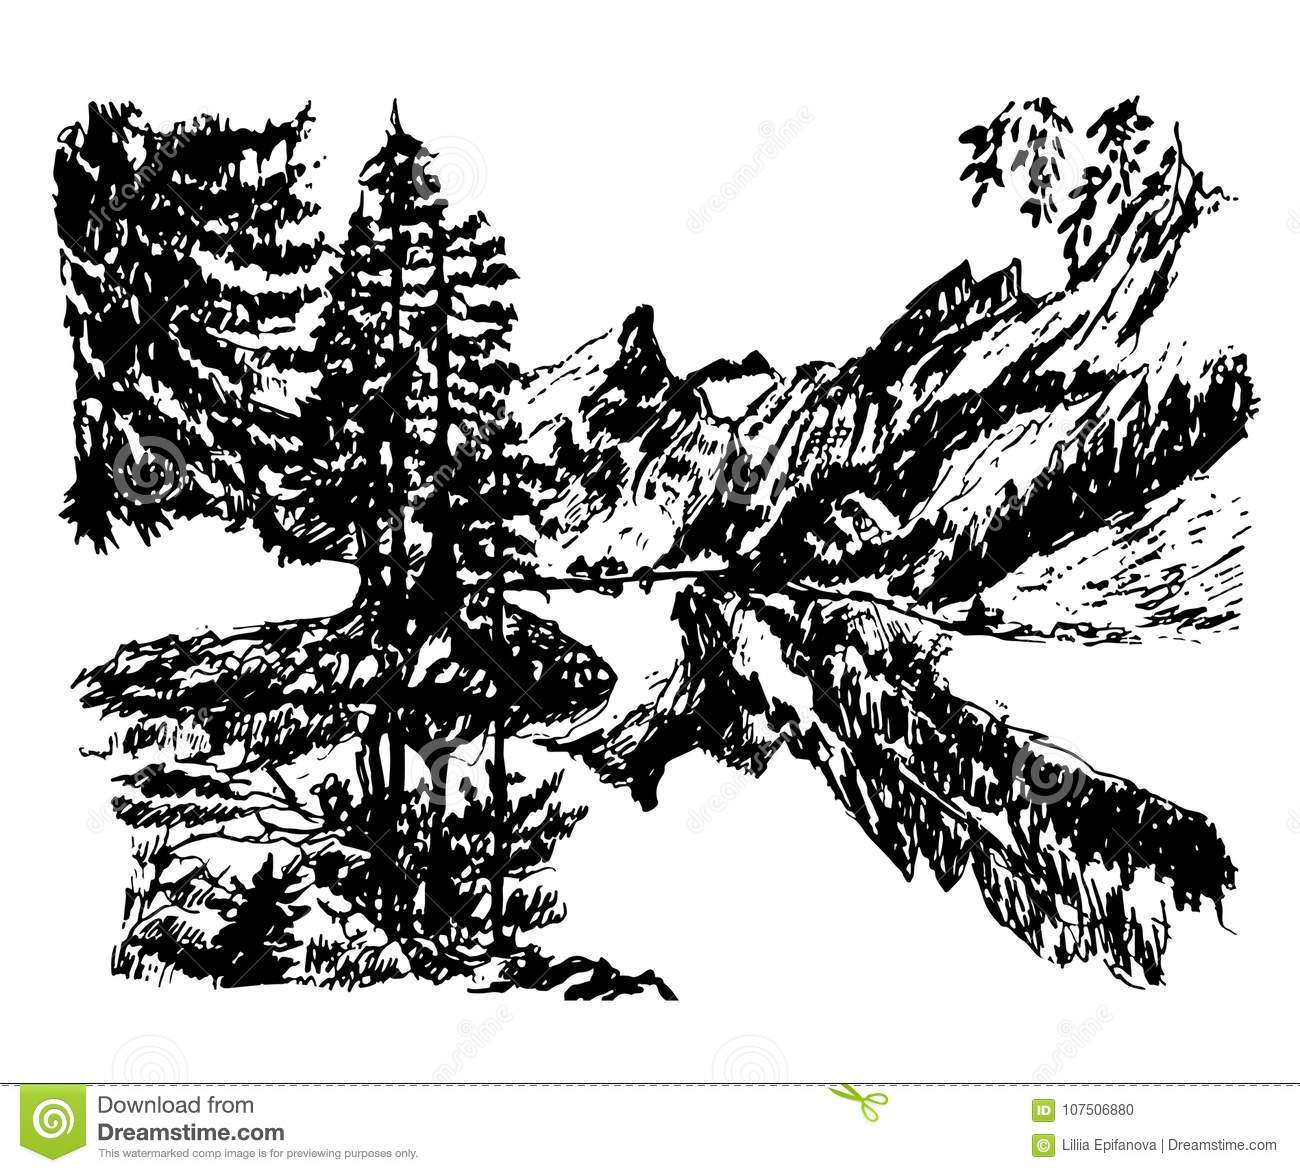 Drawing background landscape beautiful mountain lake in the middle of a coniferous forest, hand-drawn vector illustration